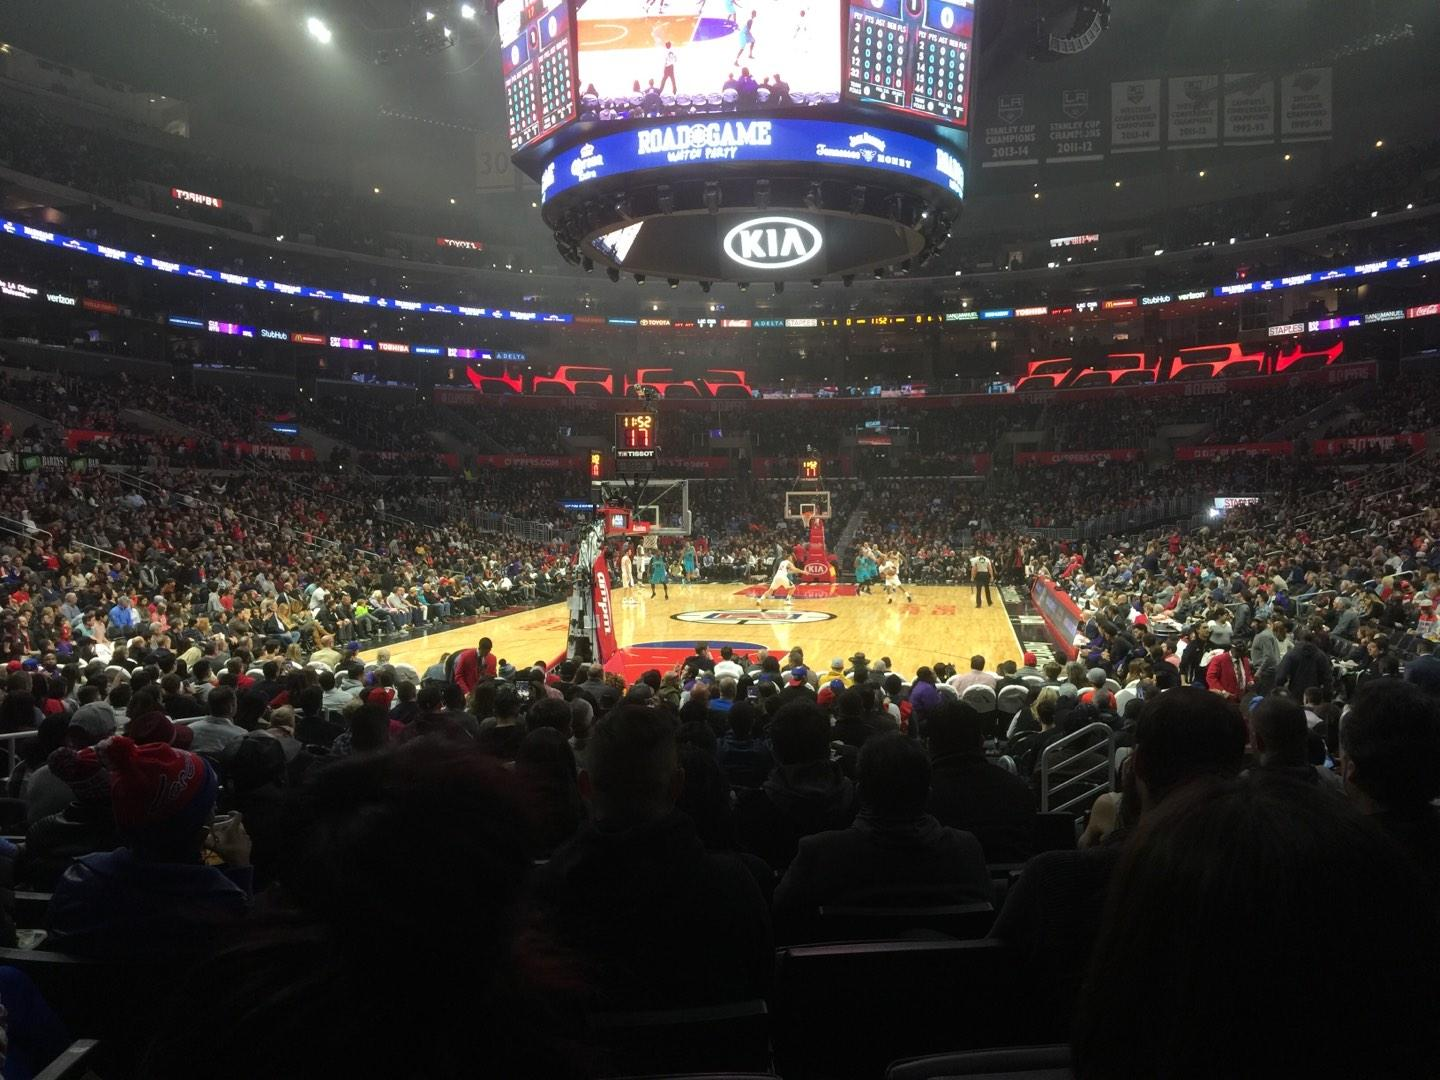 Staples Center Section 106 Row 9 Seat 11